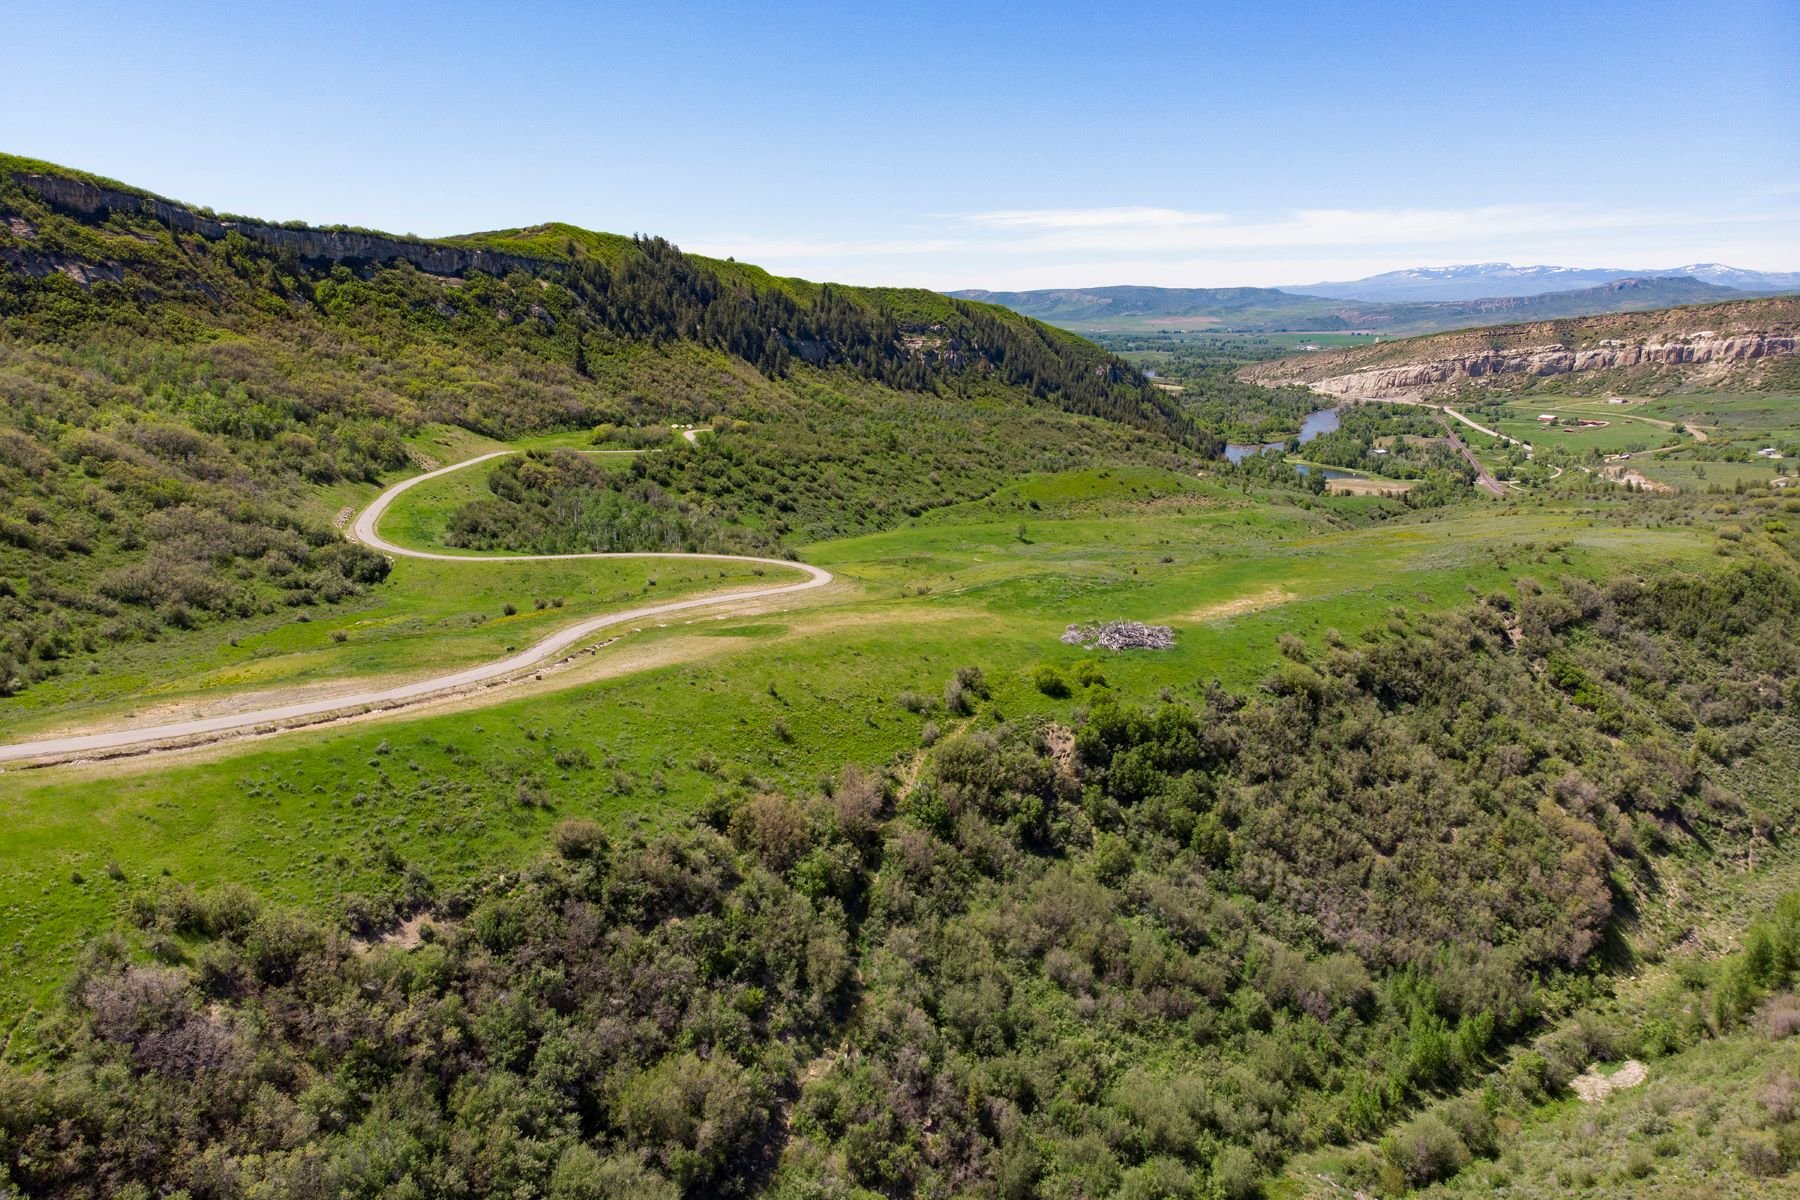 Land for Sale at Yampa River Vista 37625 Aspen Bluff Ter Hayden, Colorado 81639 United States